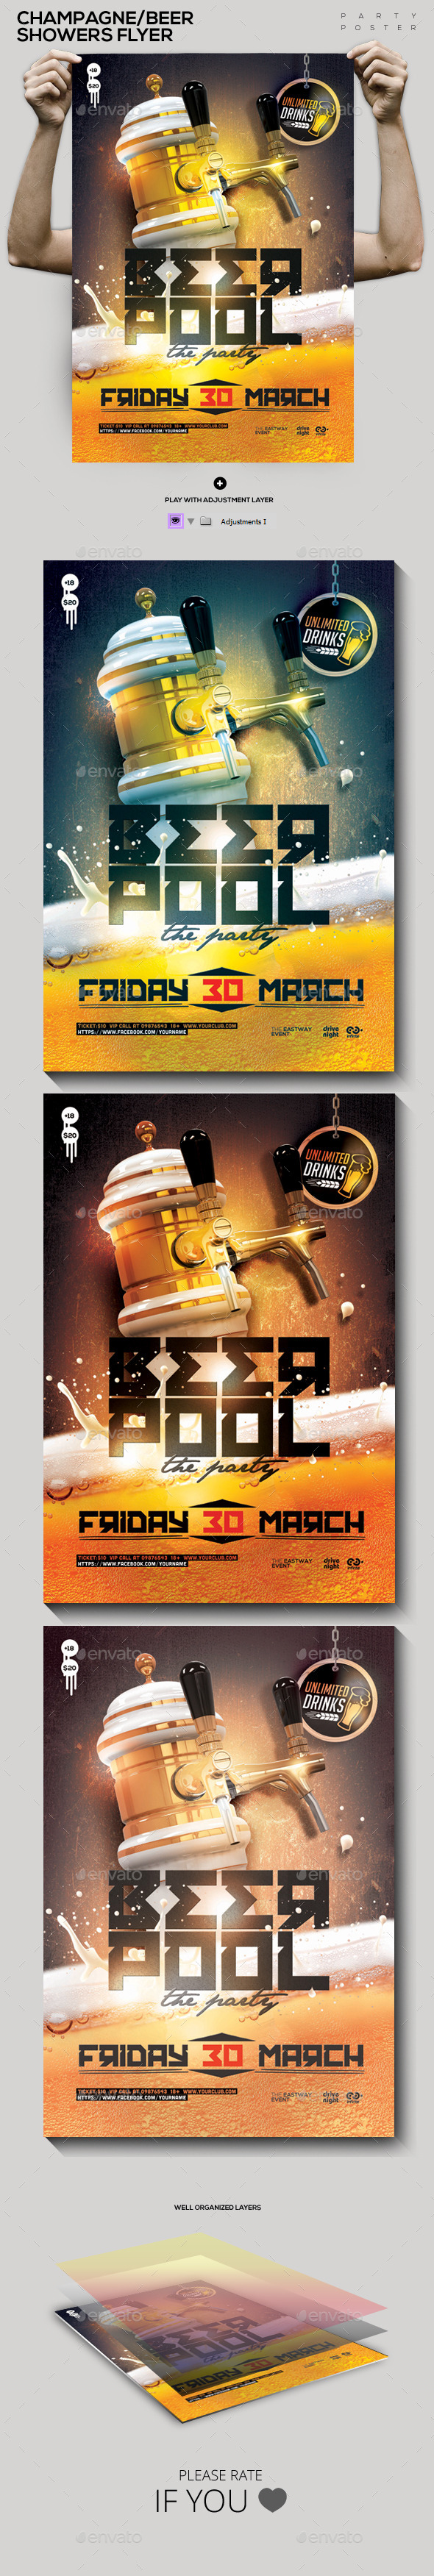 Beer/Champagne Pool Showers Flyer Flyer/Poster - Clubs & Parties Events